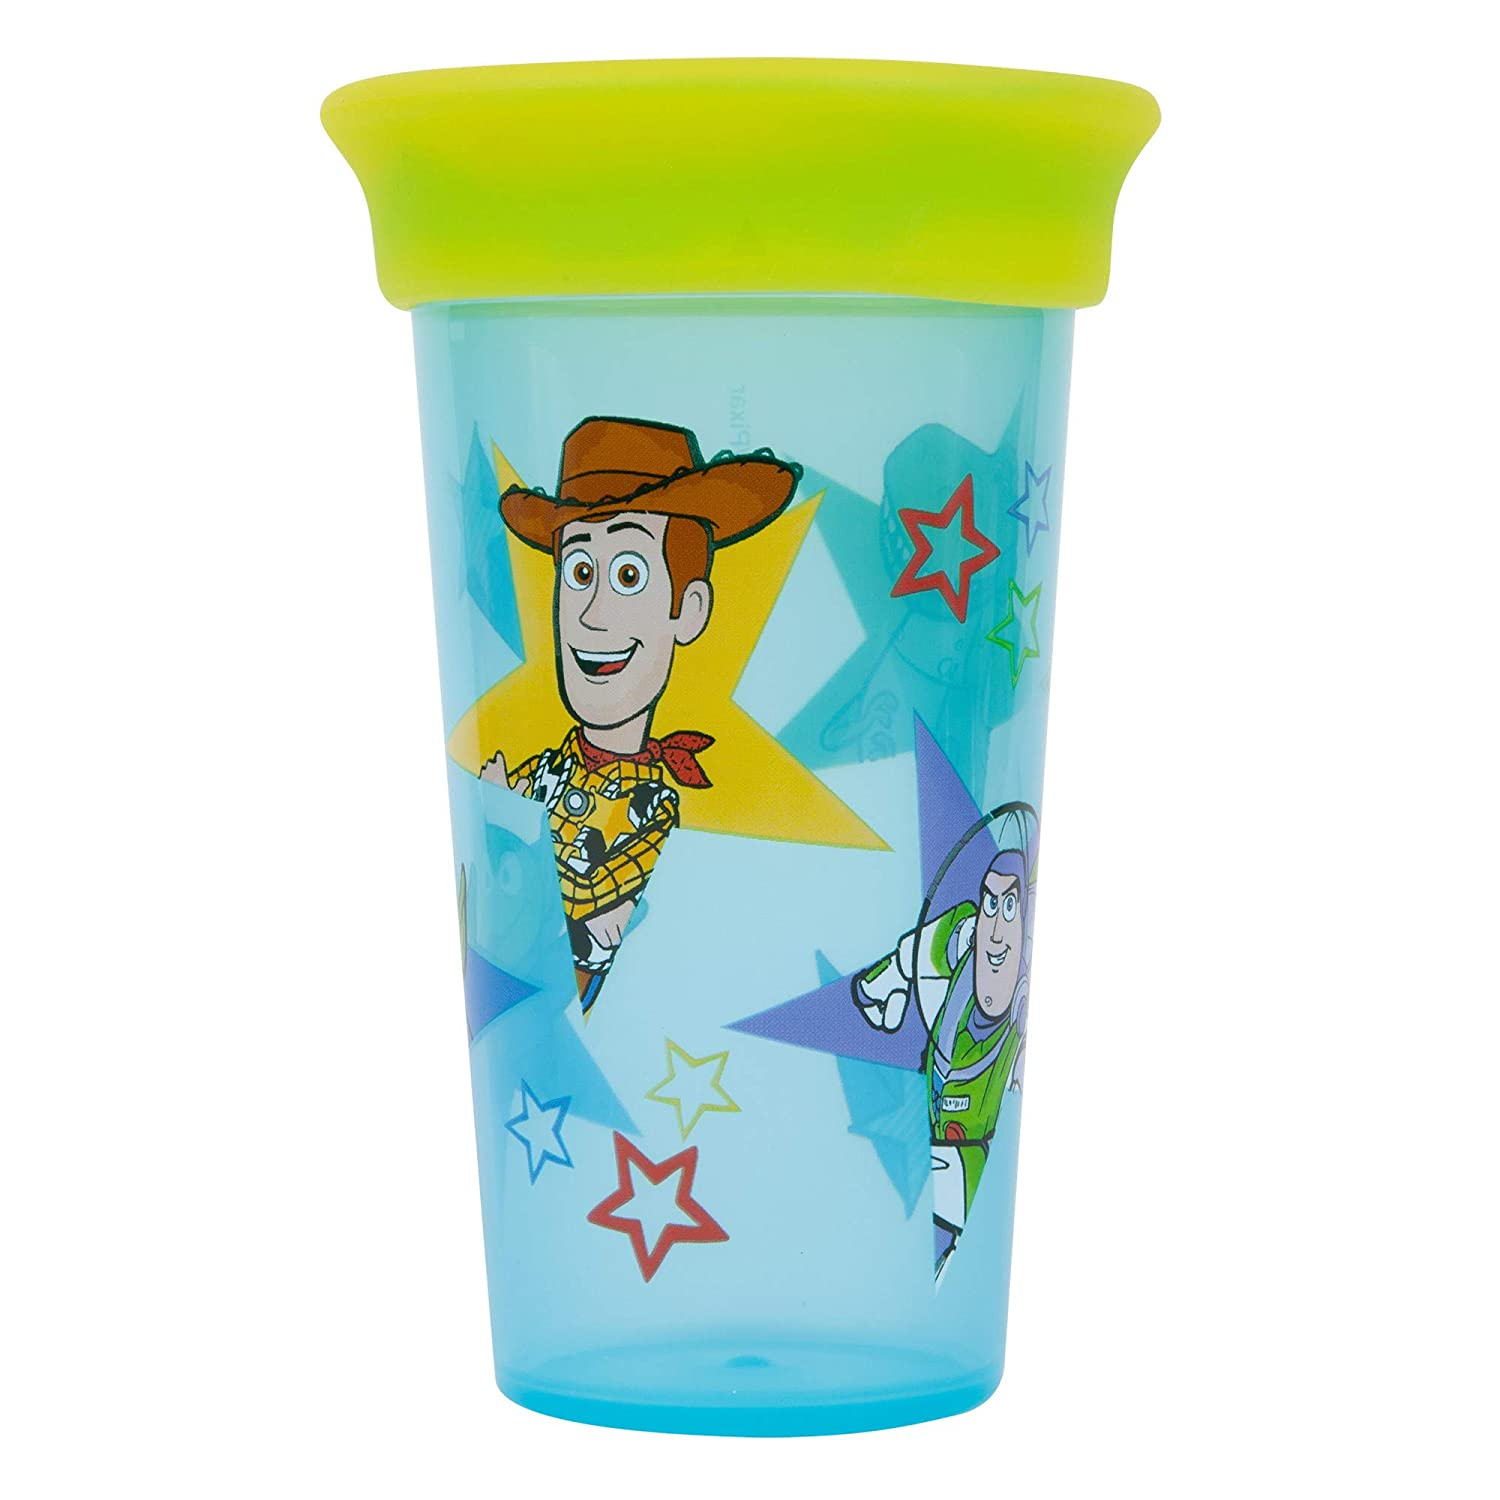 The First Years Toy Story Sip Around Spoutless Cups Cup Limited Special Price 2 1 S Award in